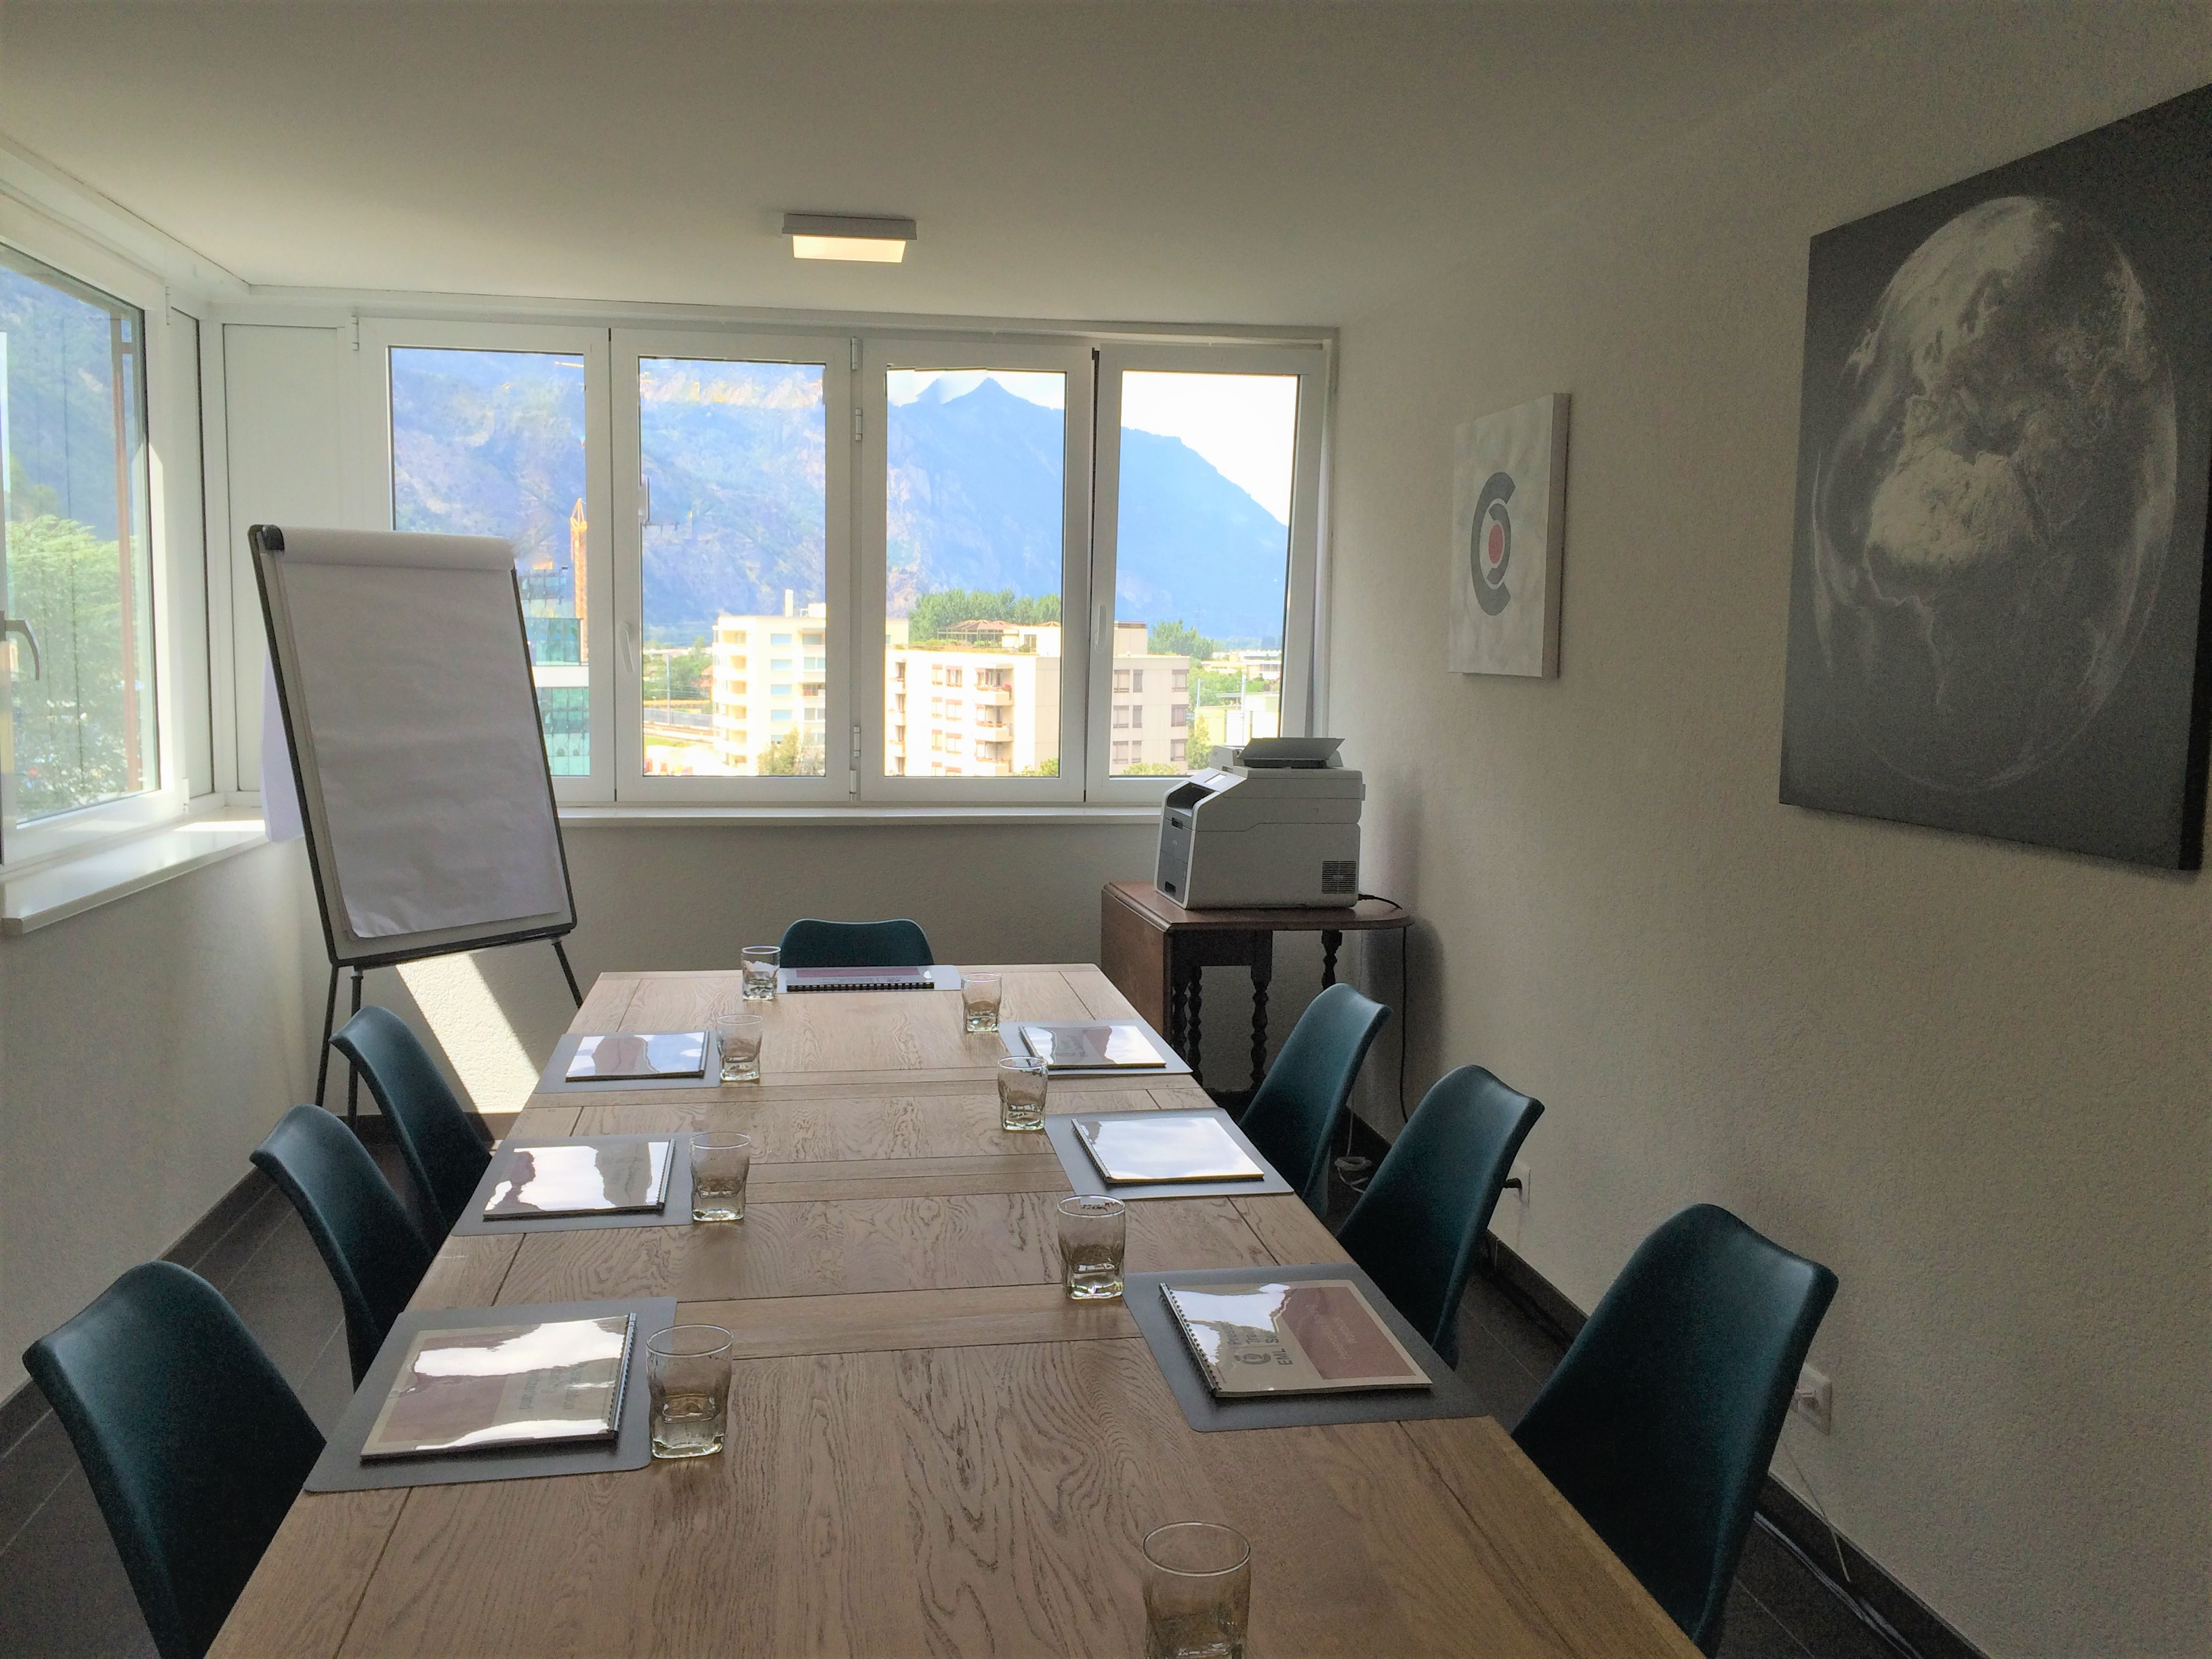 Training room for courses in Switzerland - window view